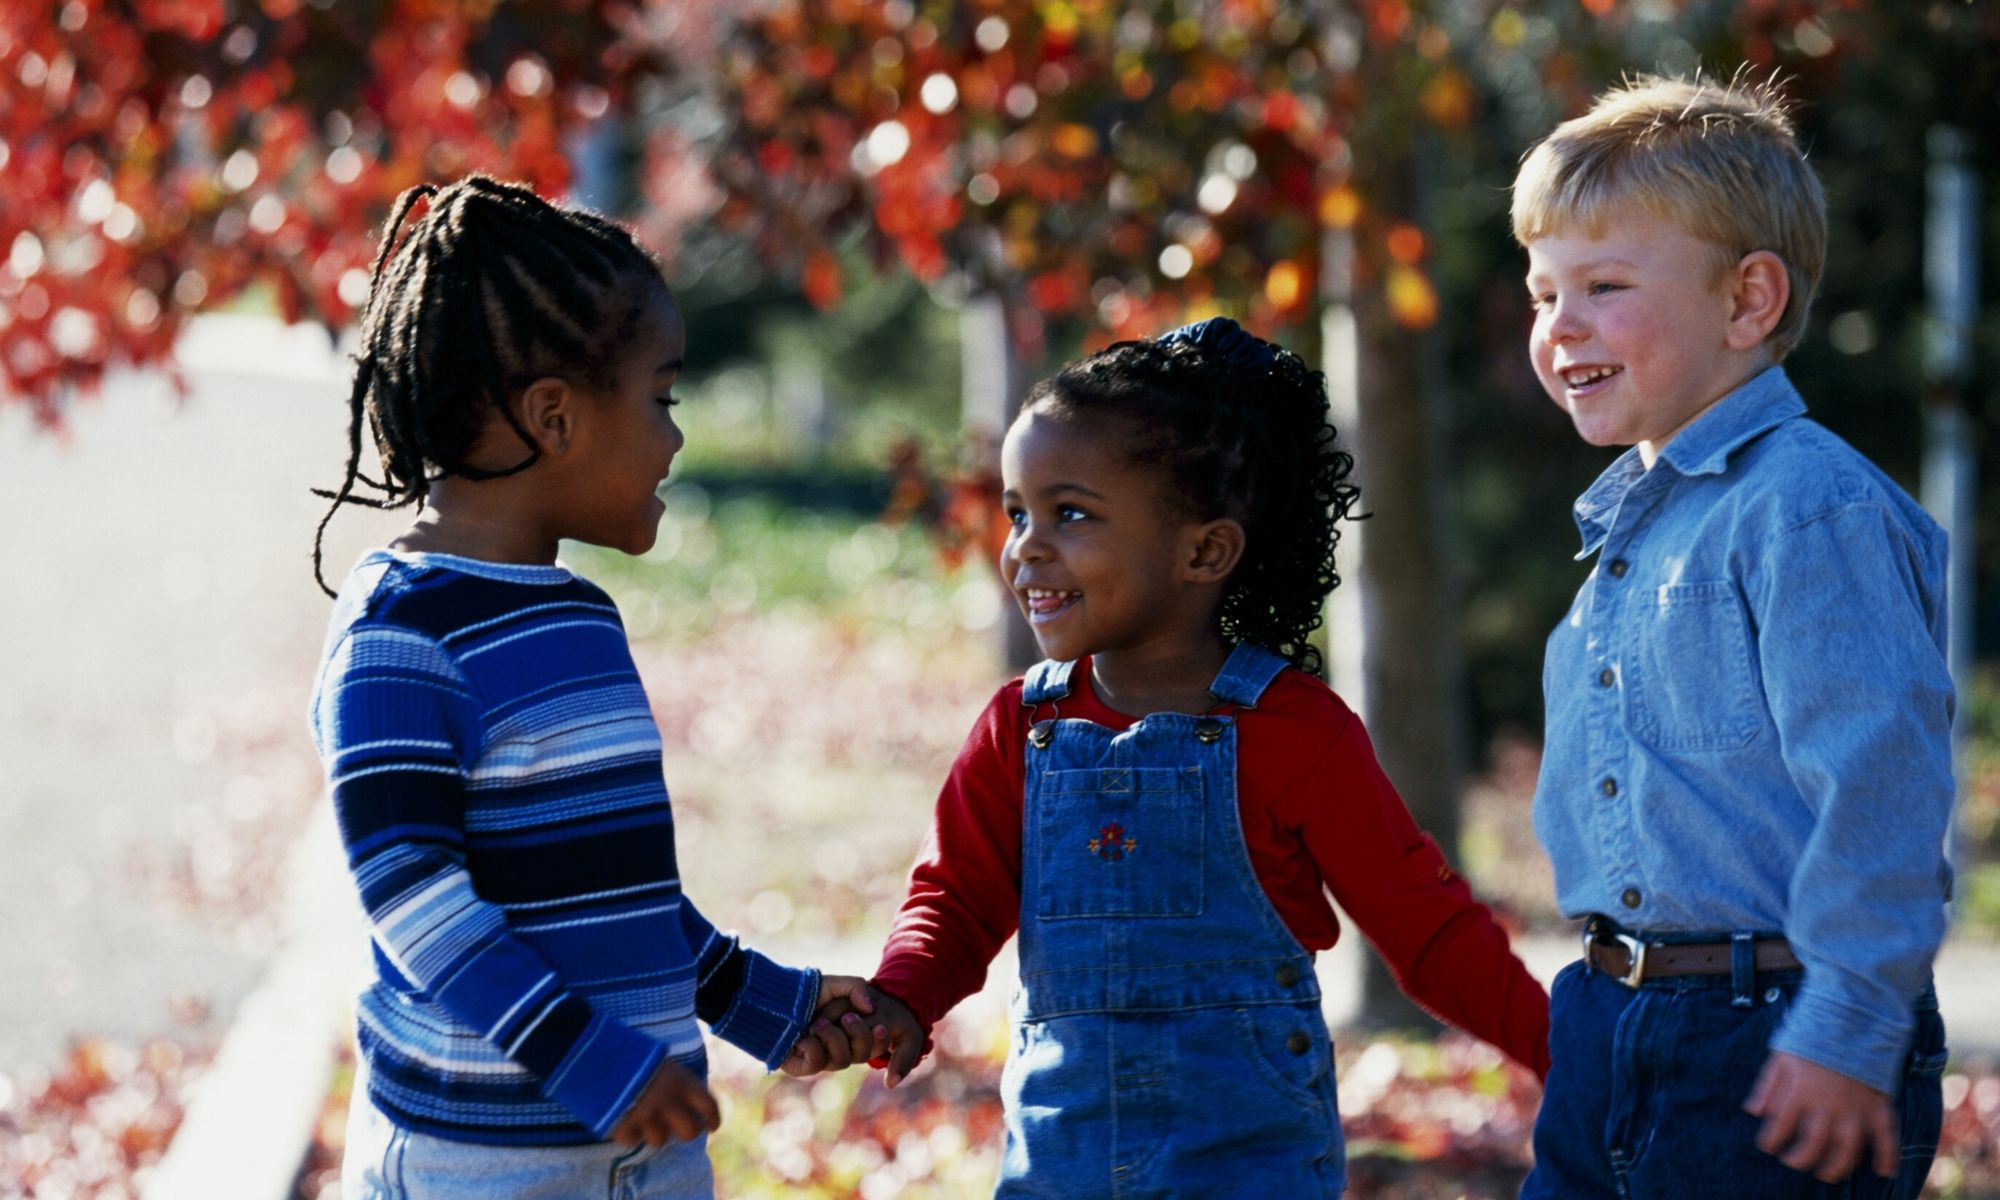 Children of different races holding hands outdoors